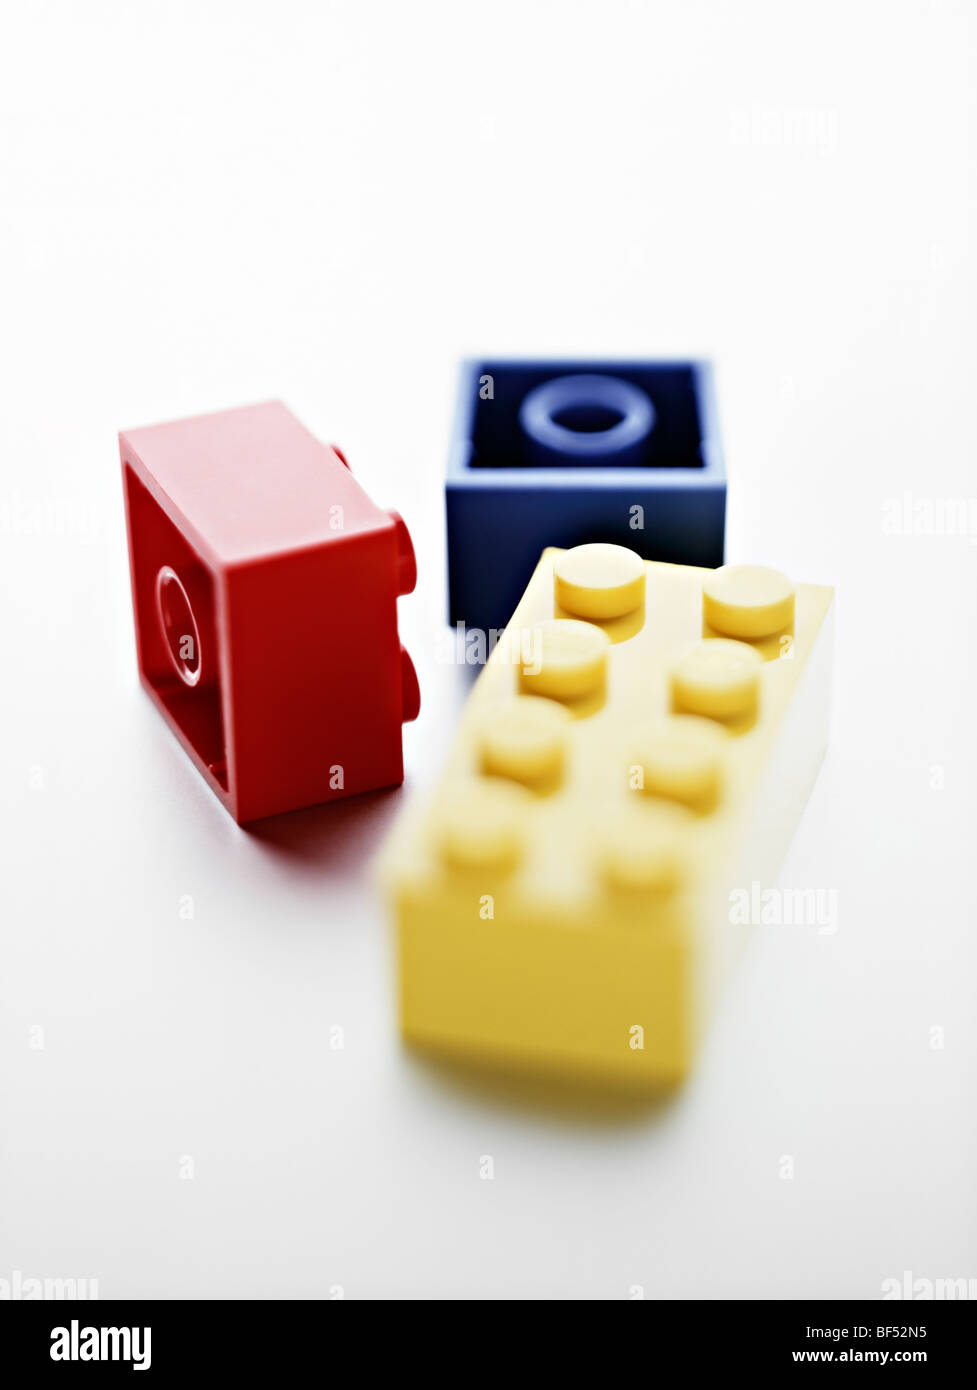 red lego bricks background stockfotos red lego bricks background bilder alamy. Black Bedroom Furniture Sets. Home Design Ideas